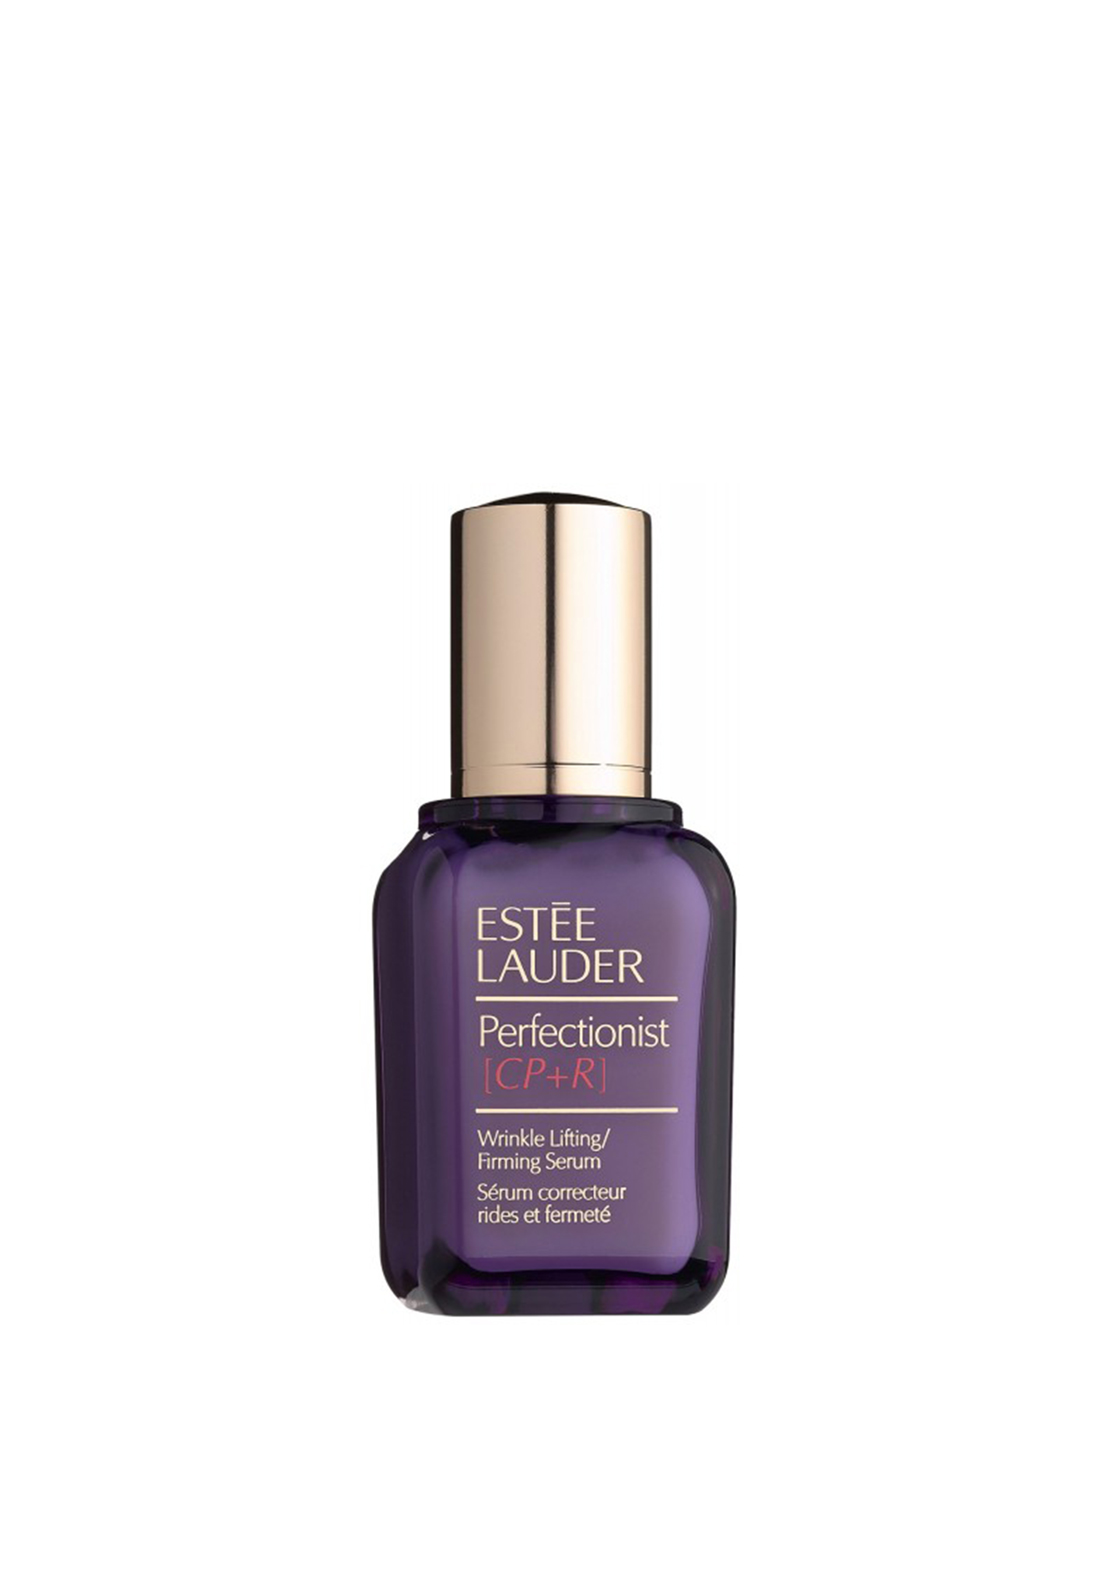 Estee Lauder Perfectionist Wrinkle Lifting & Firming Solution, 30ml